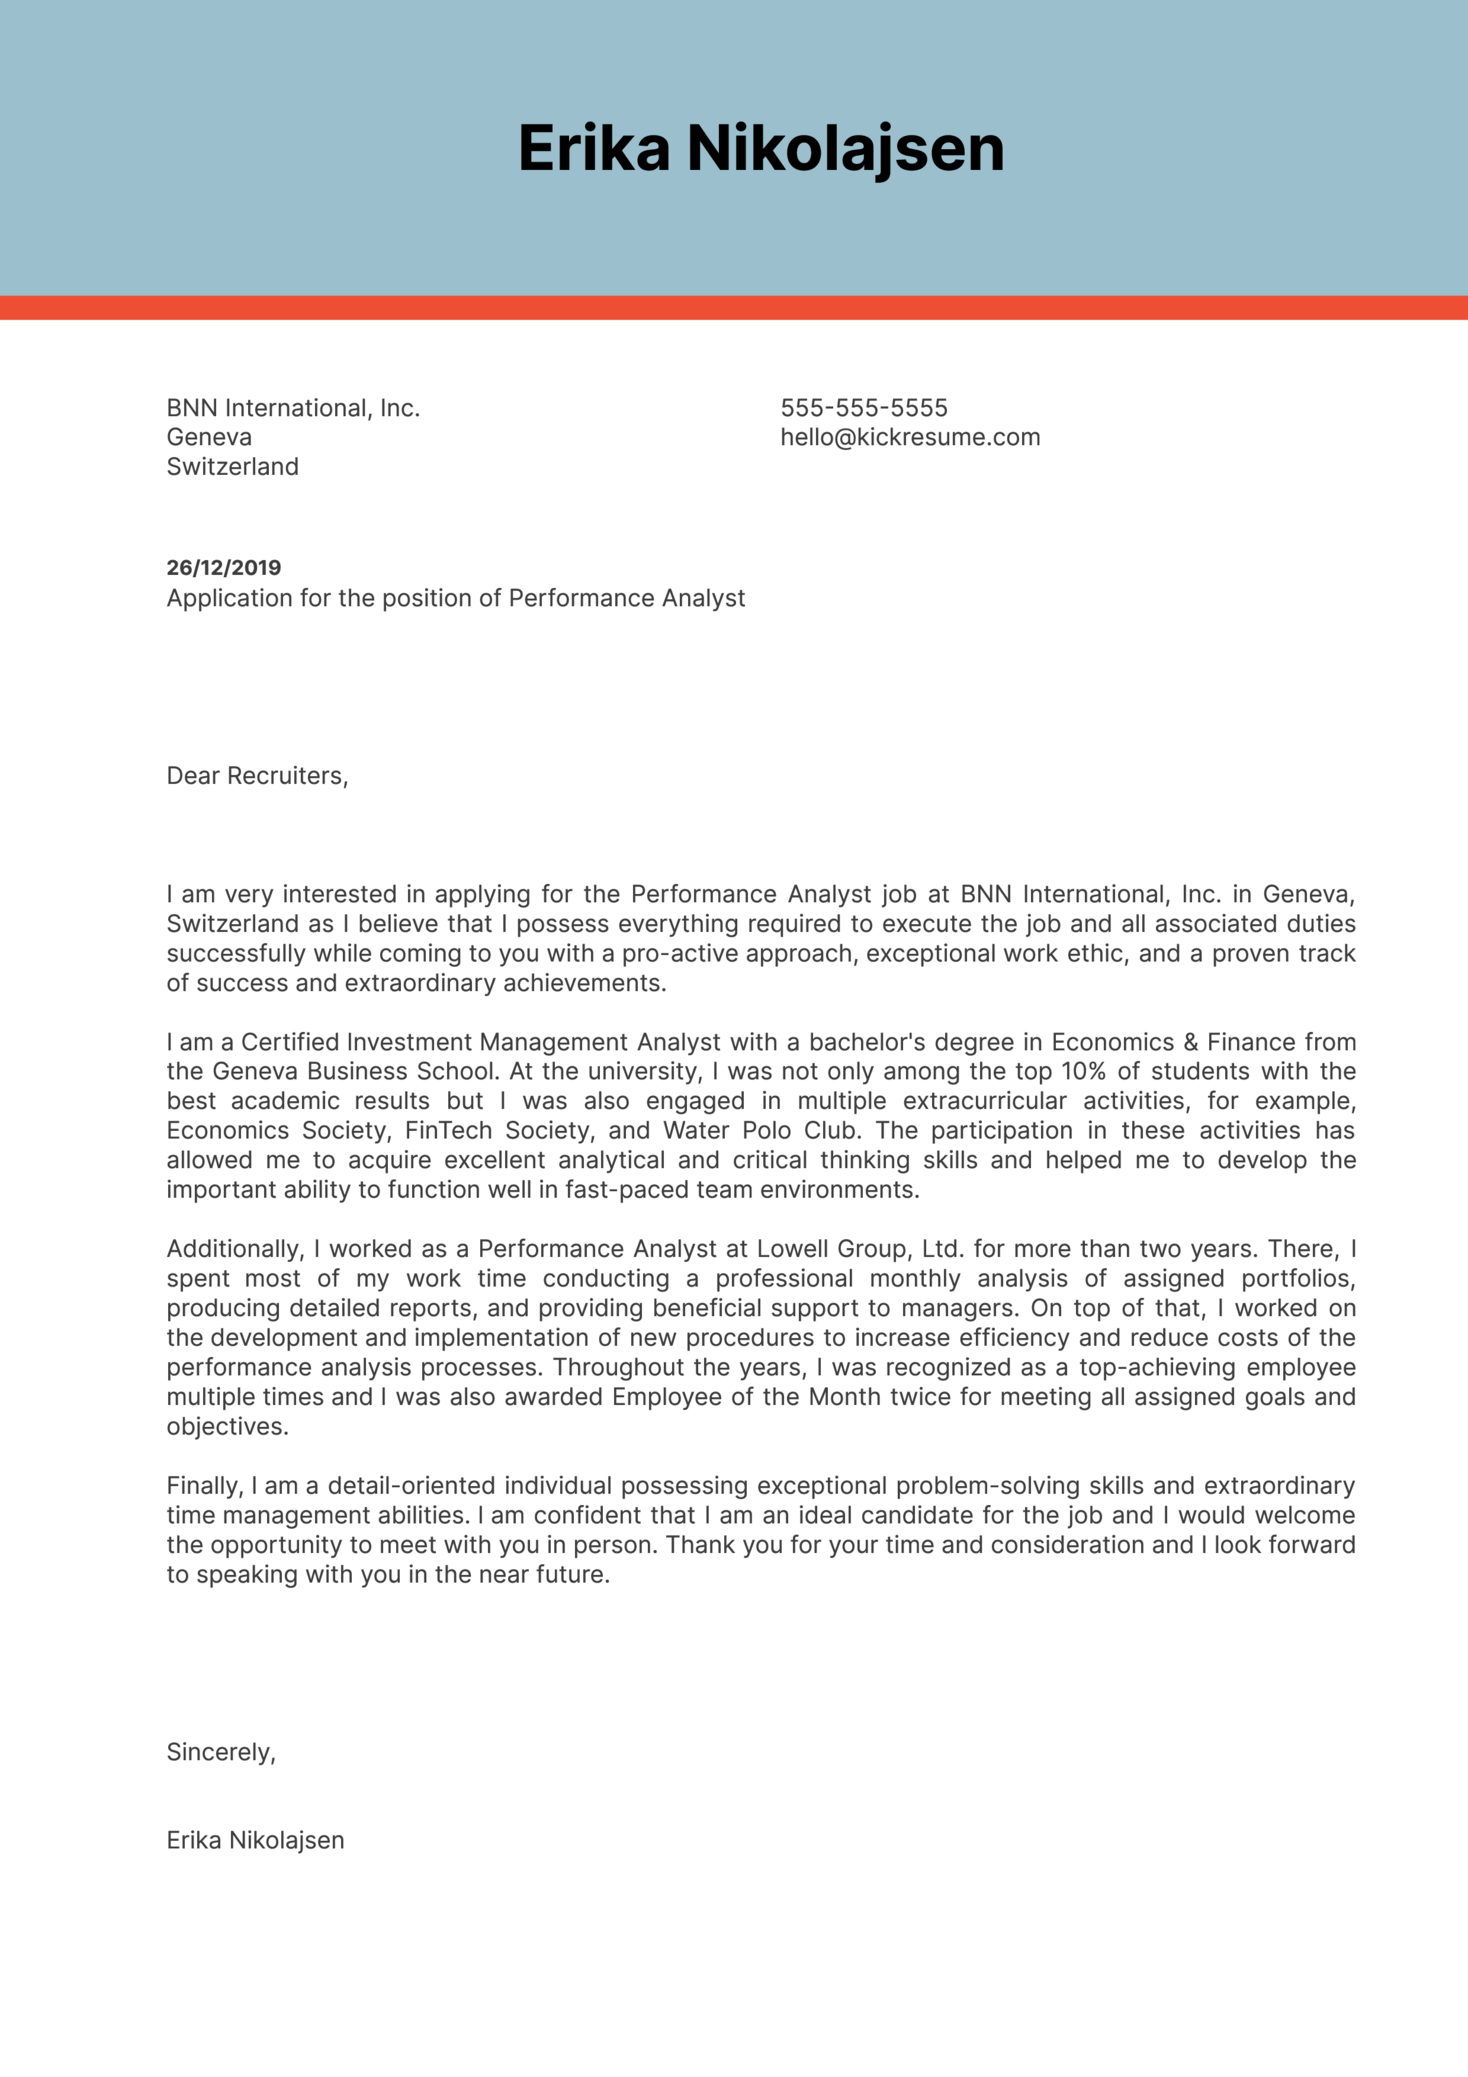 Performance Analyst Cover Letter Sample